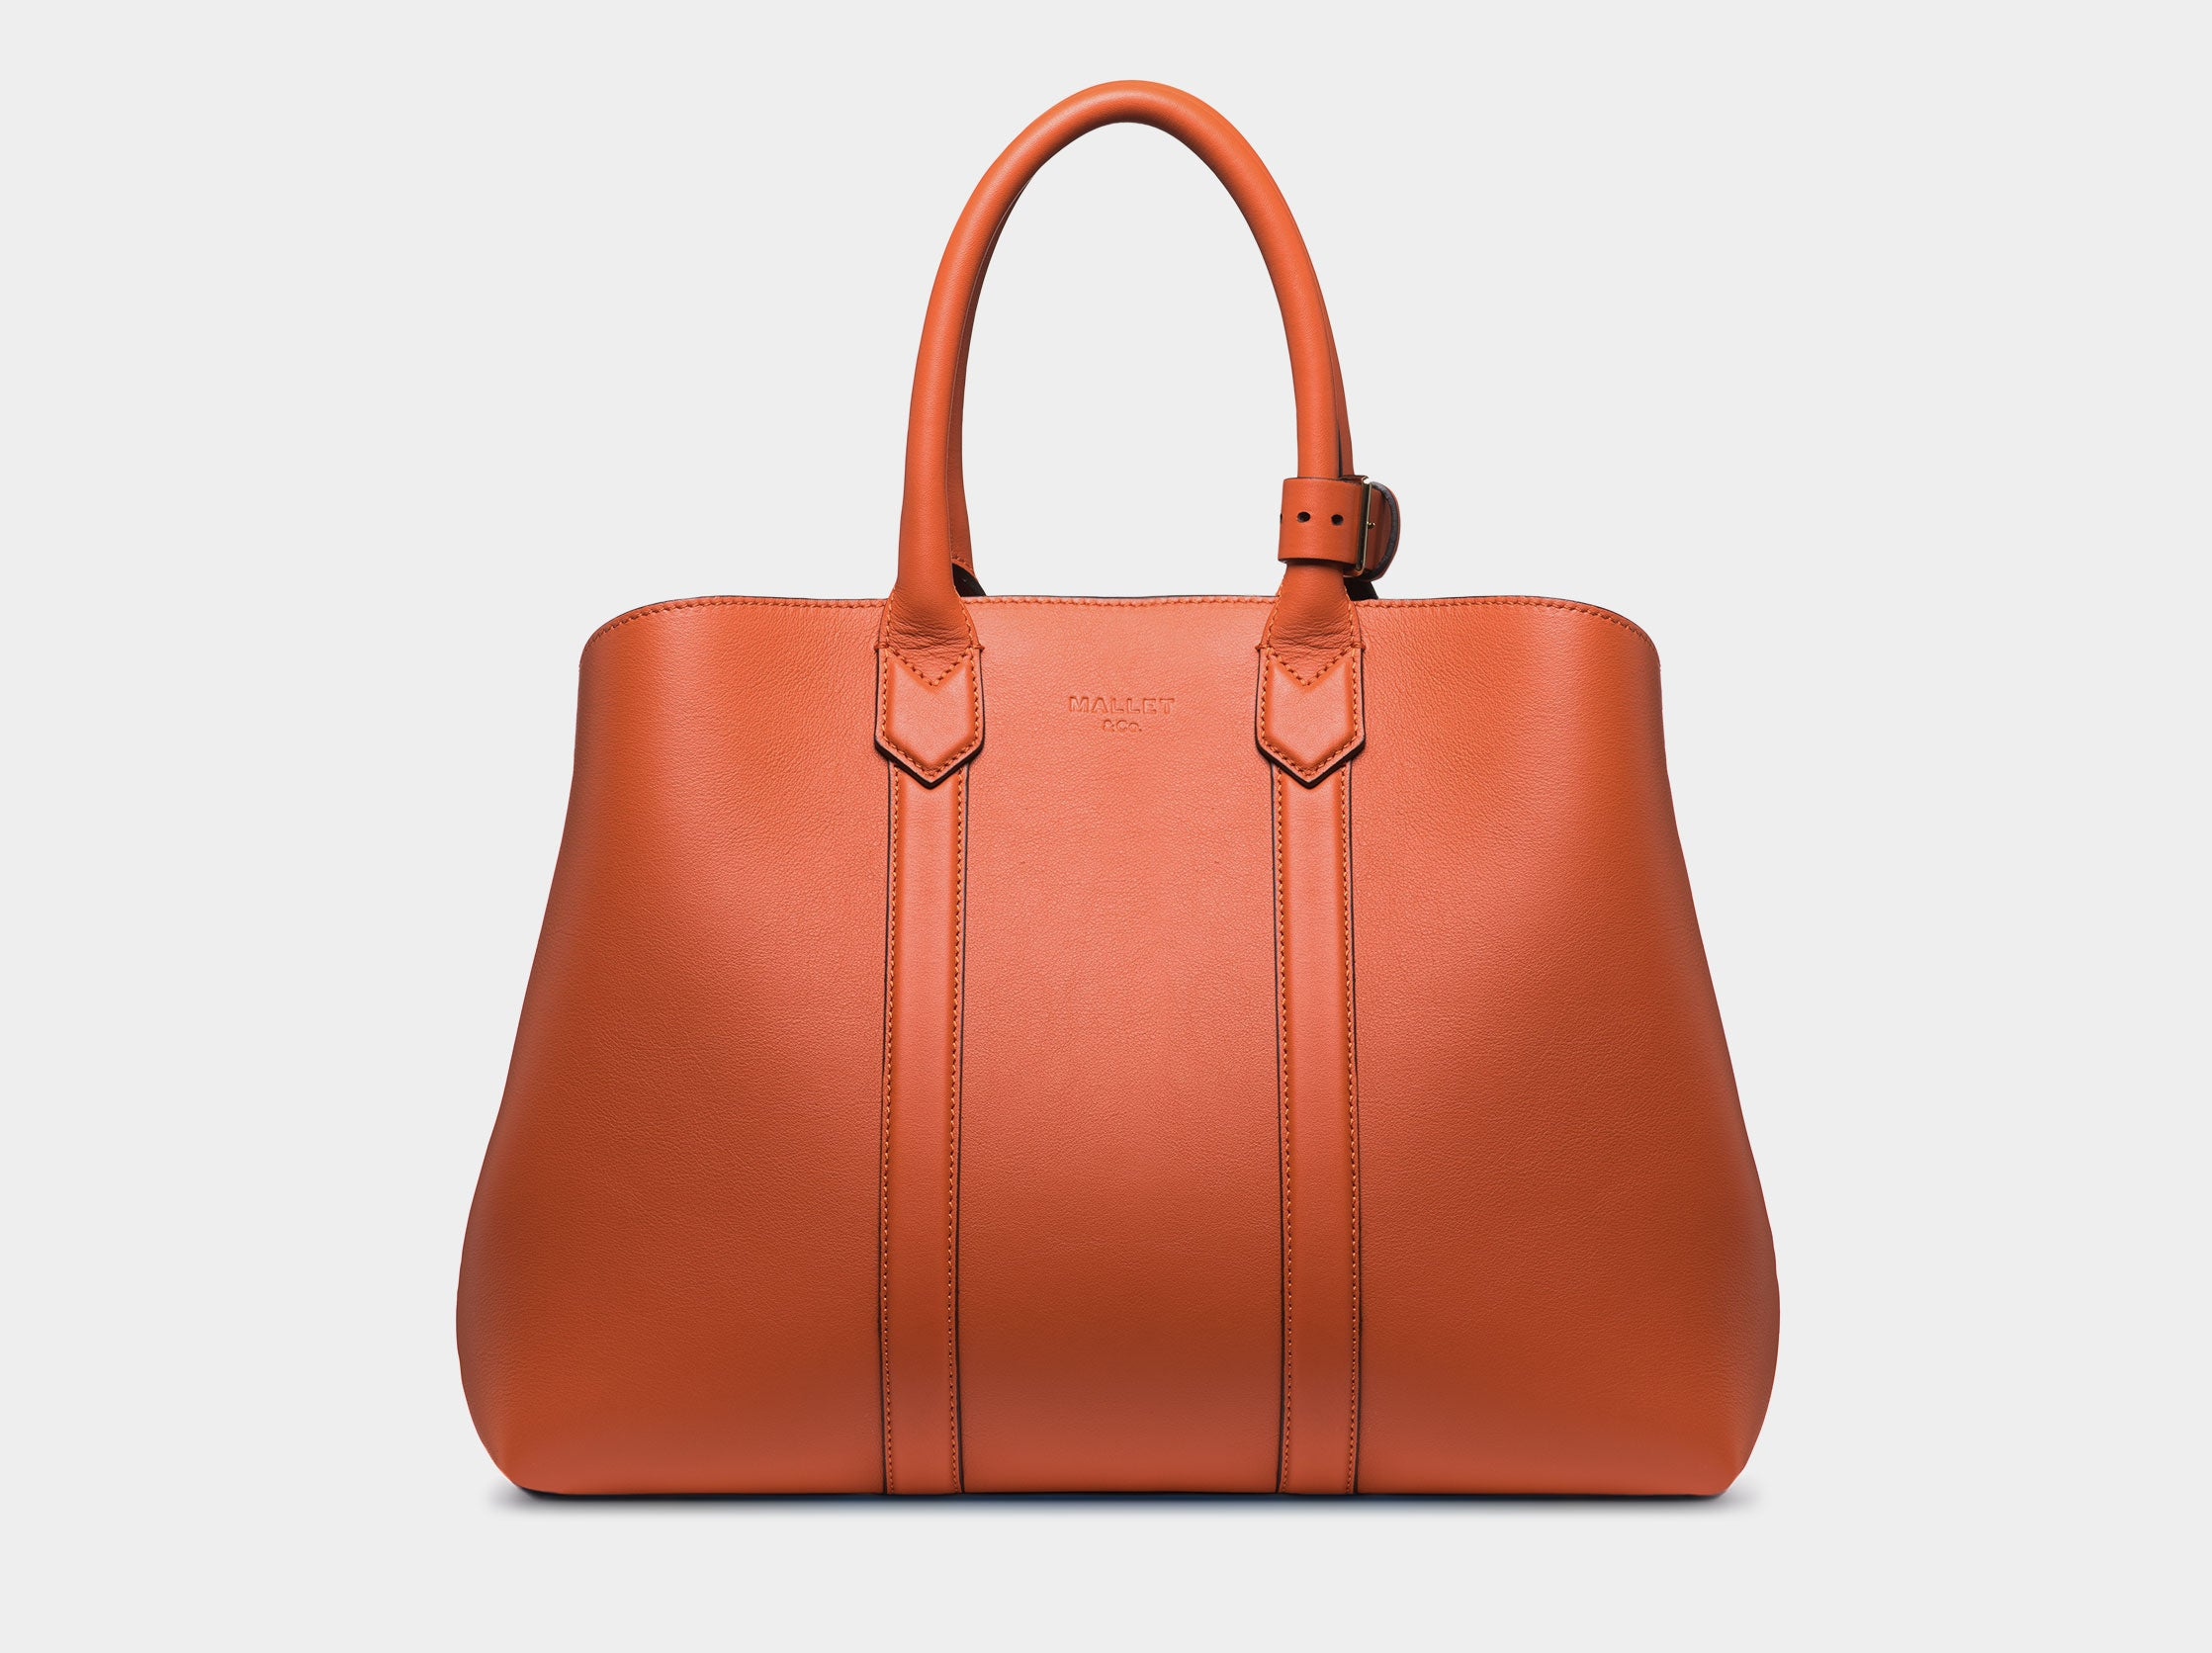 27b112c912 The Full Collection of Bags From Mallet   Co – MALLET   Co